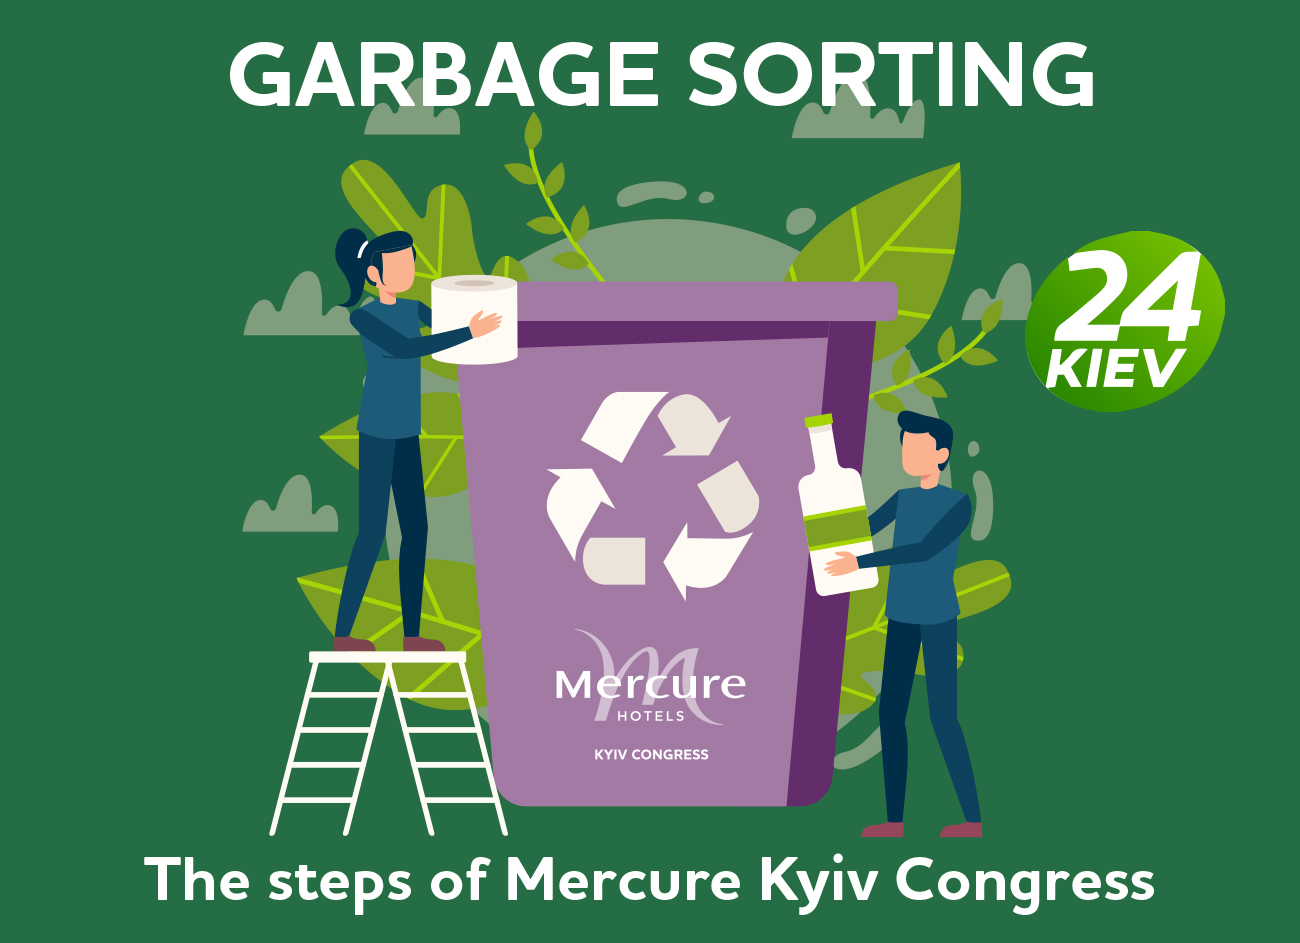 New rules and laws on garbage sorting - soon available